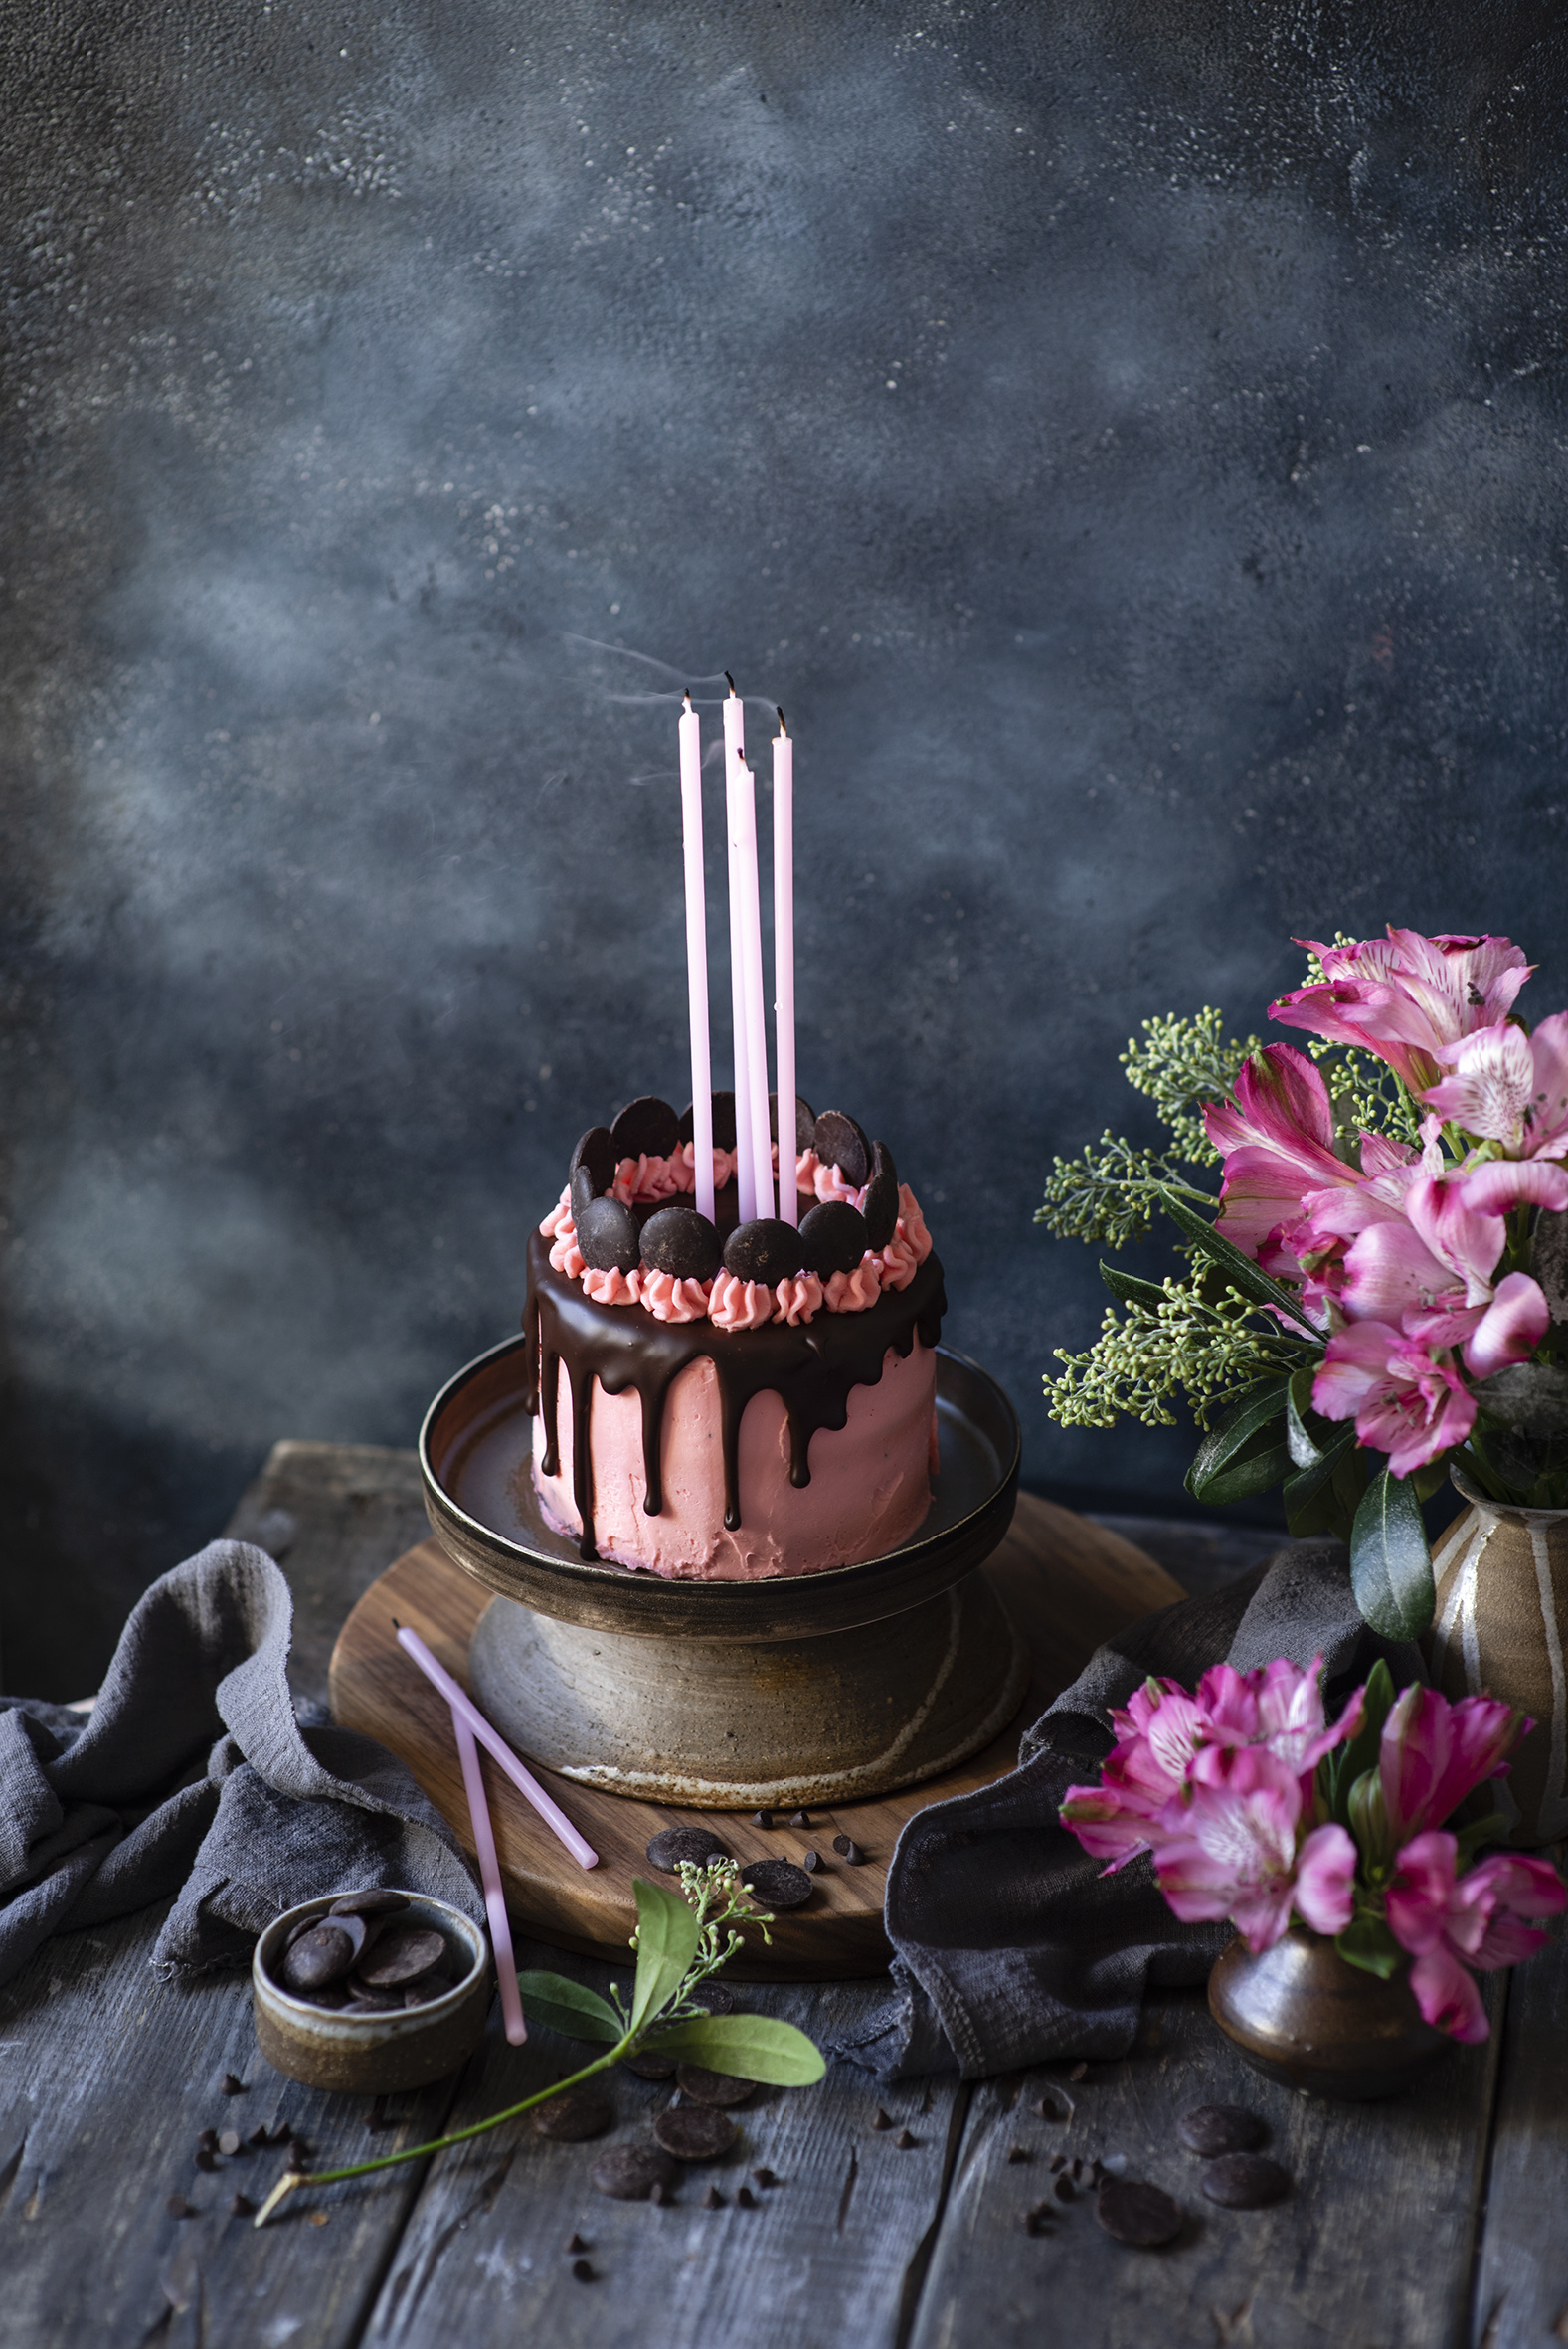 Photos Chocolate Cakes Food Candles Holidays Still-life Design  for Mobile phone Torte